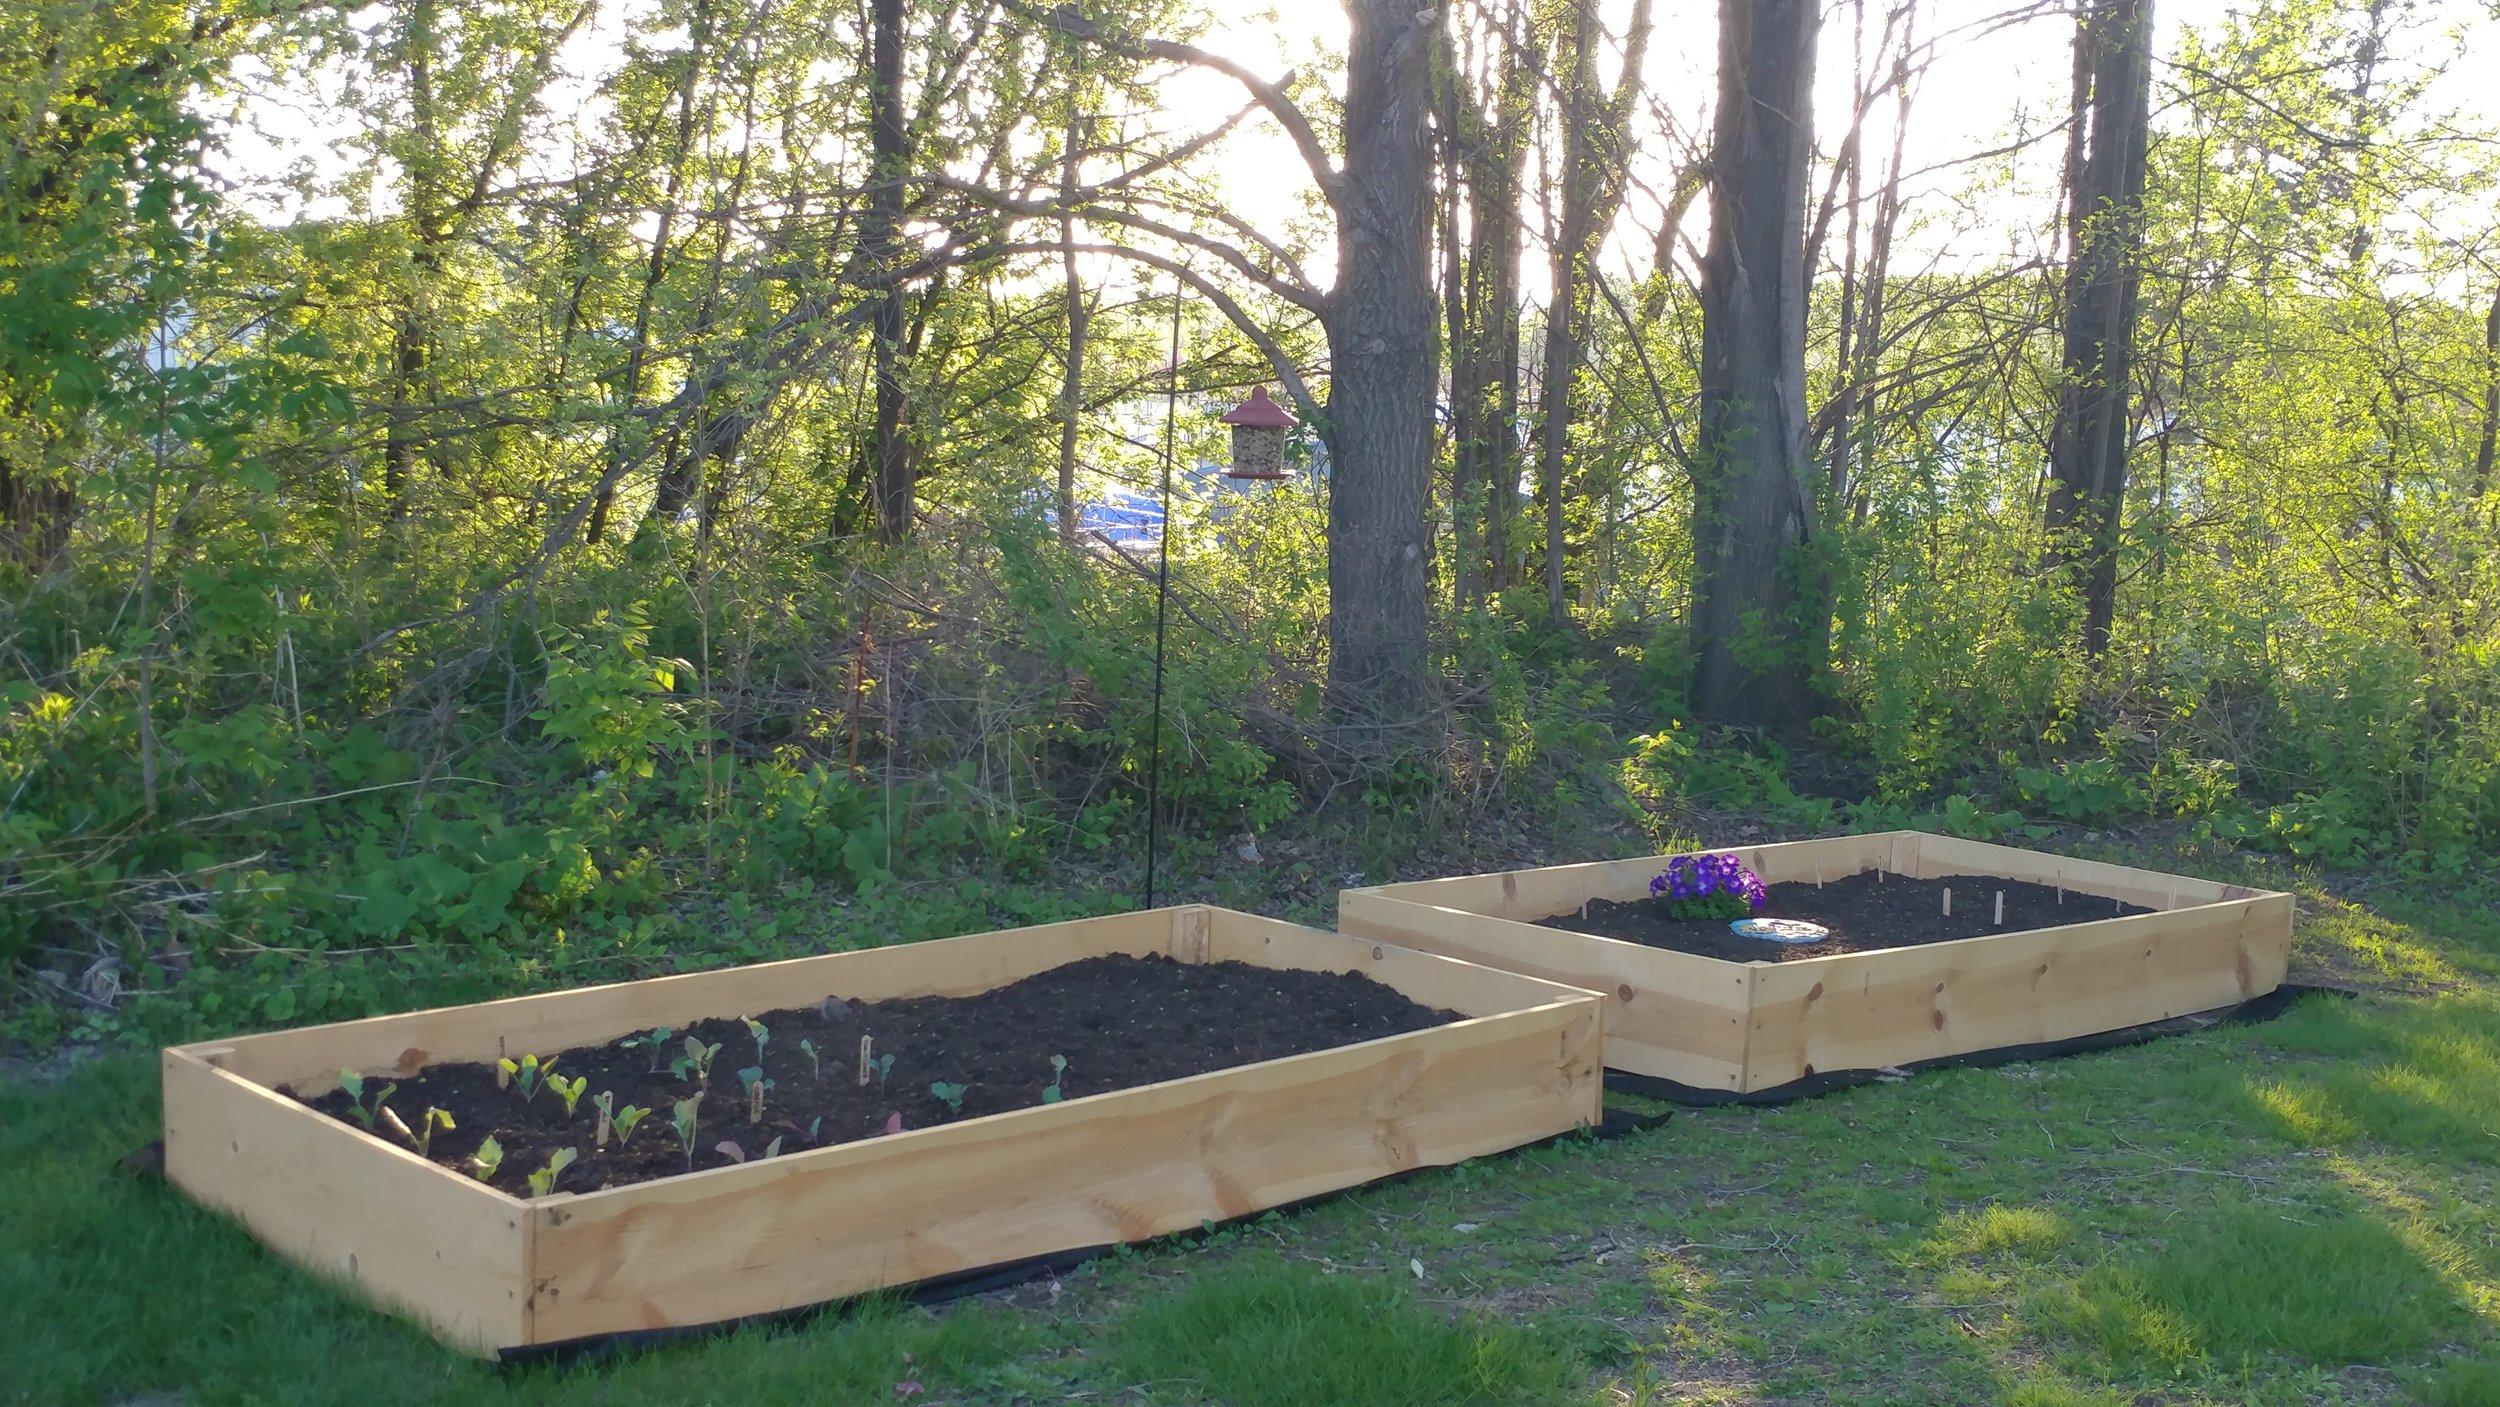 The Red Wing Recovery Garden is a way for clients to engage in community-based therapeutic activities that strengthen recovery, resiliency and social connectedness.